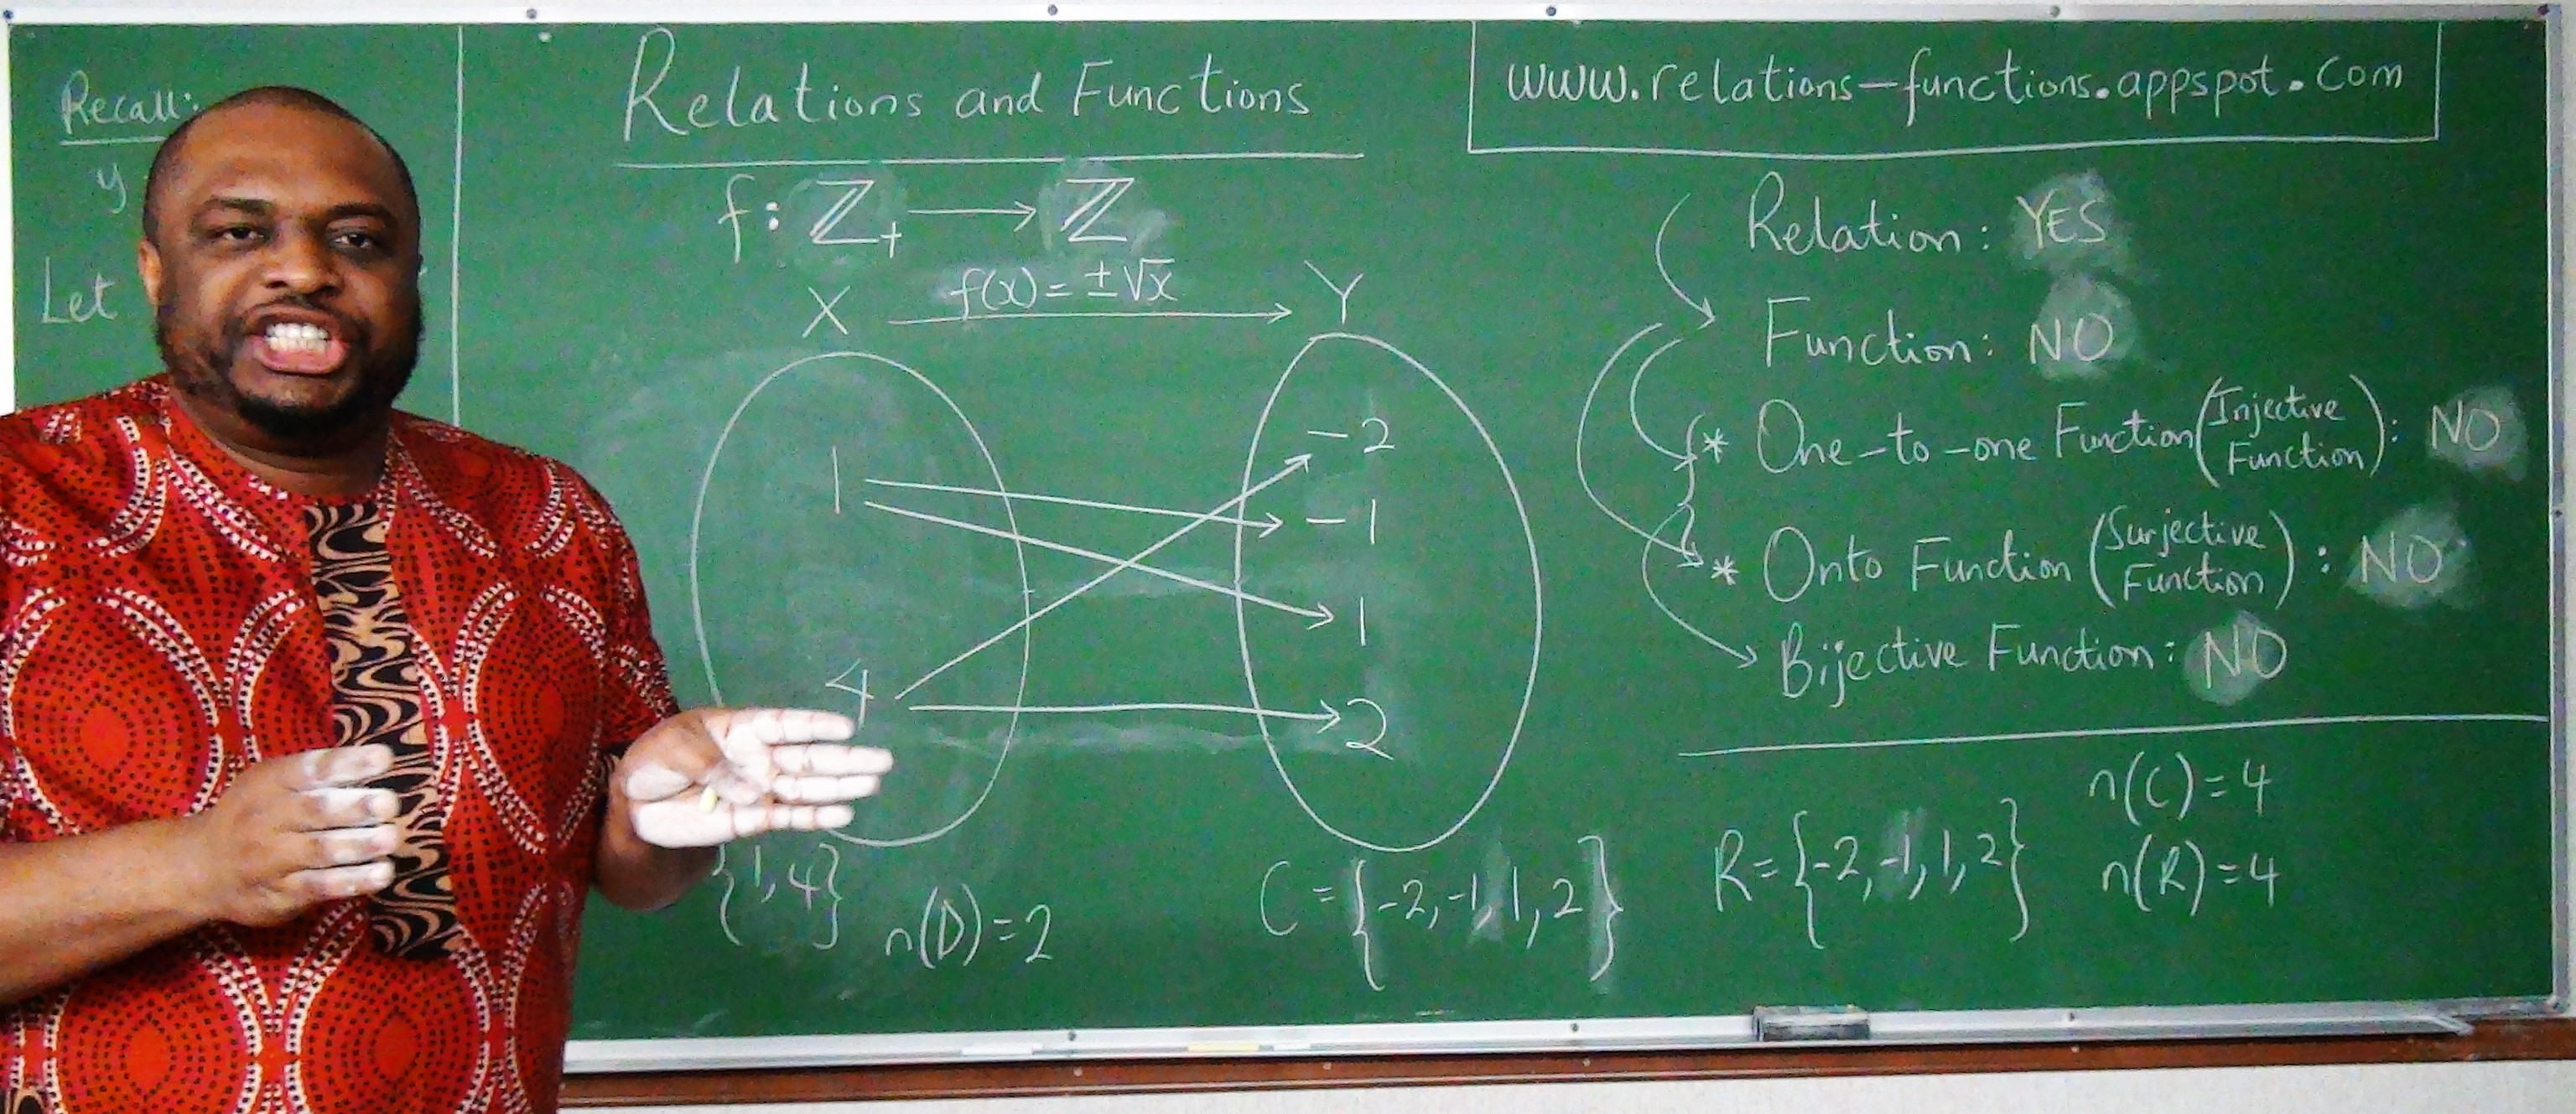 Relations and Functions 2